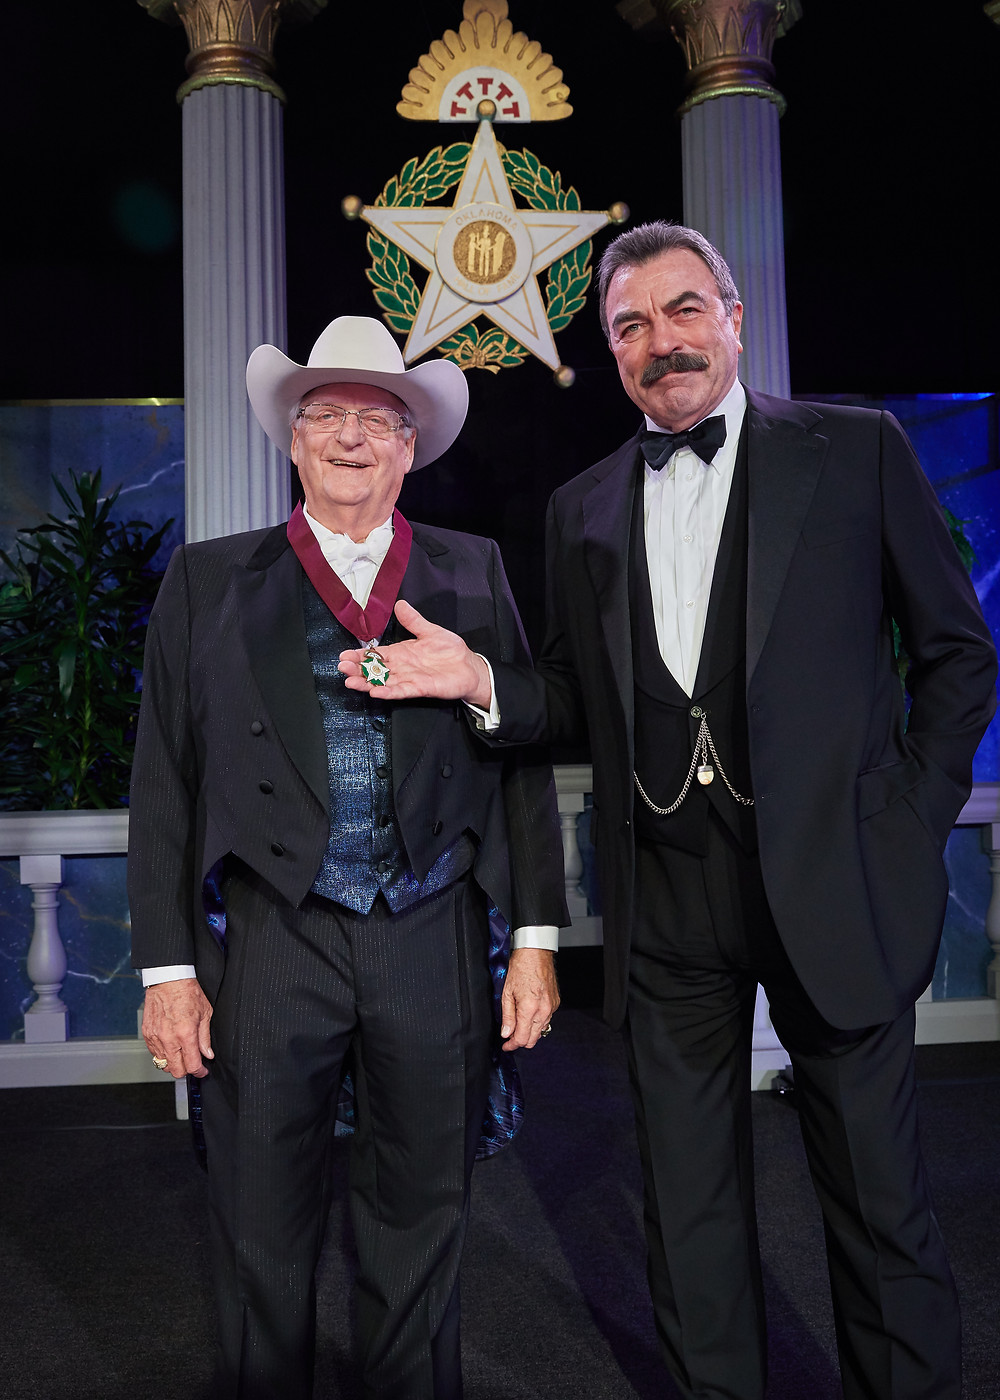 Actor and friend Tom Selleck helped induct Bob Funk into the Oklahoma Hall of Fame